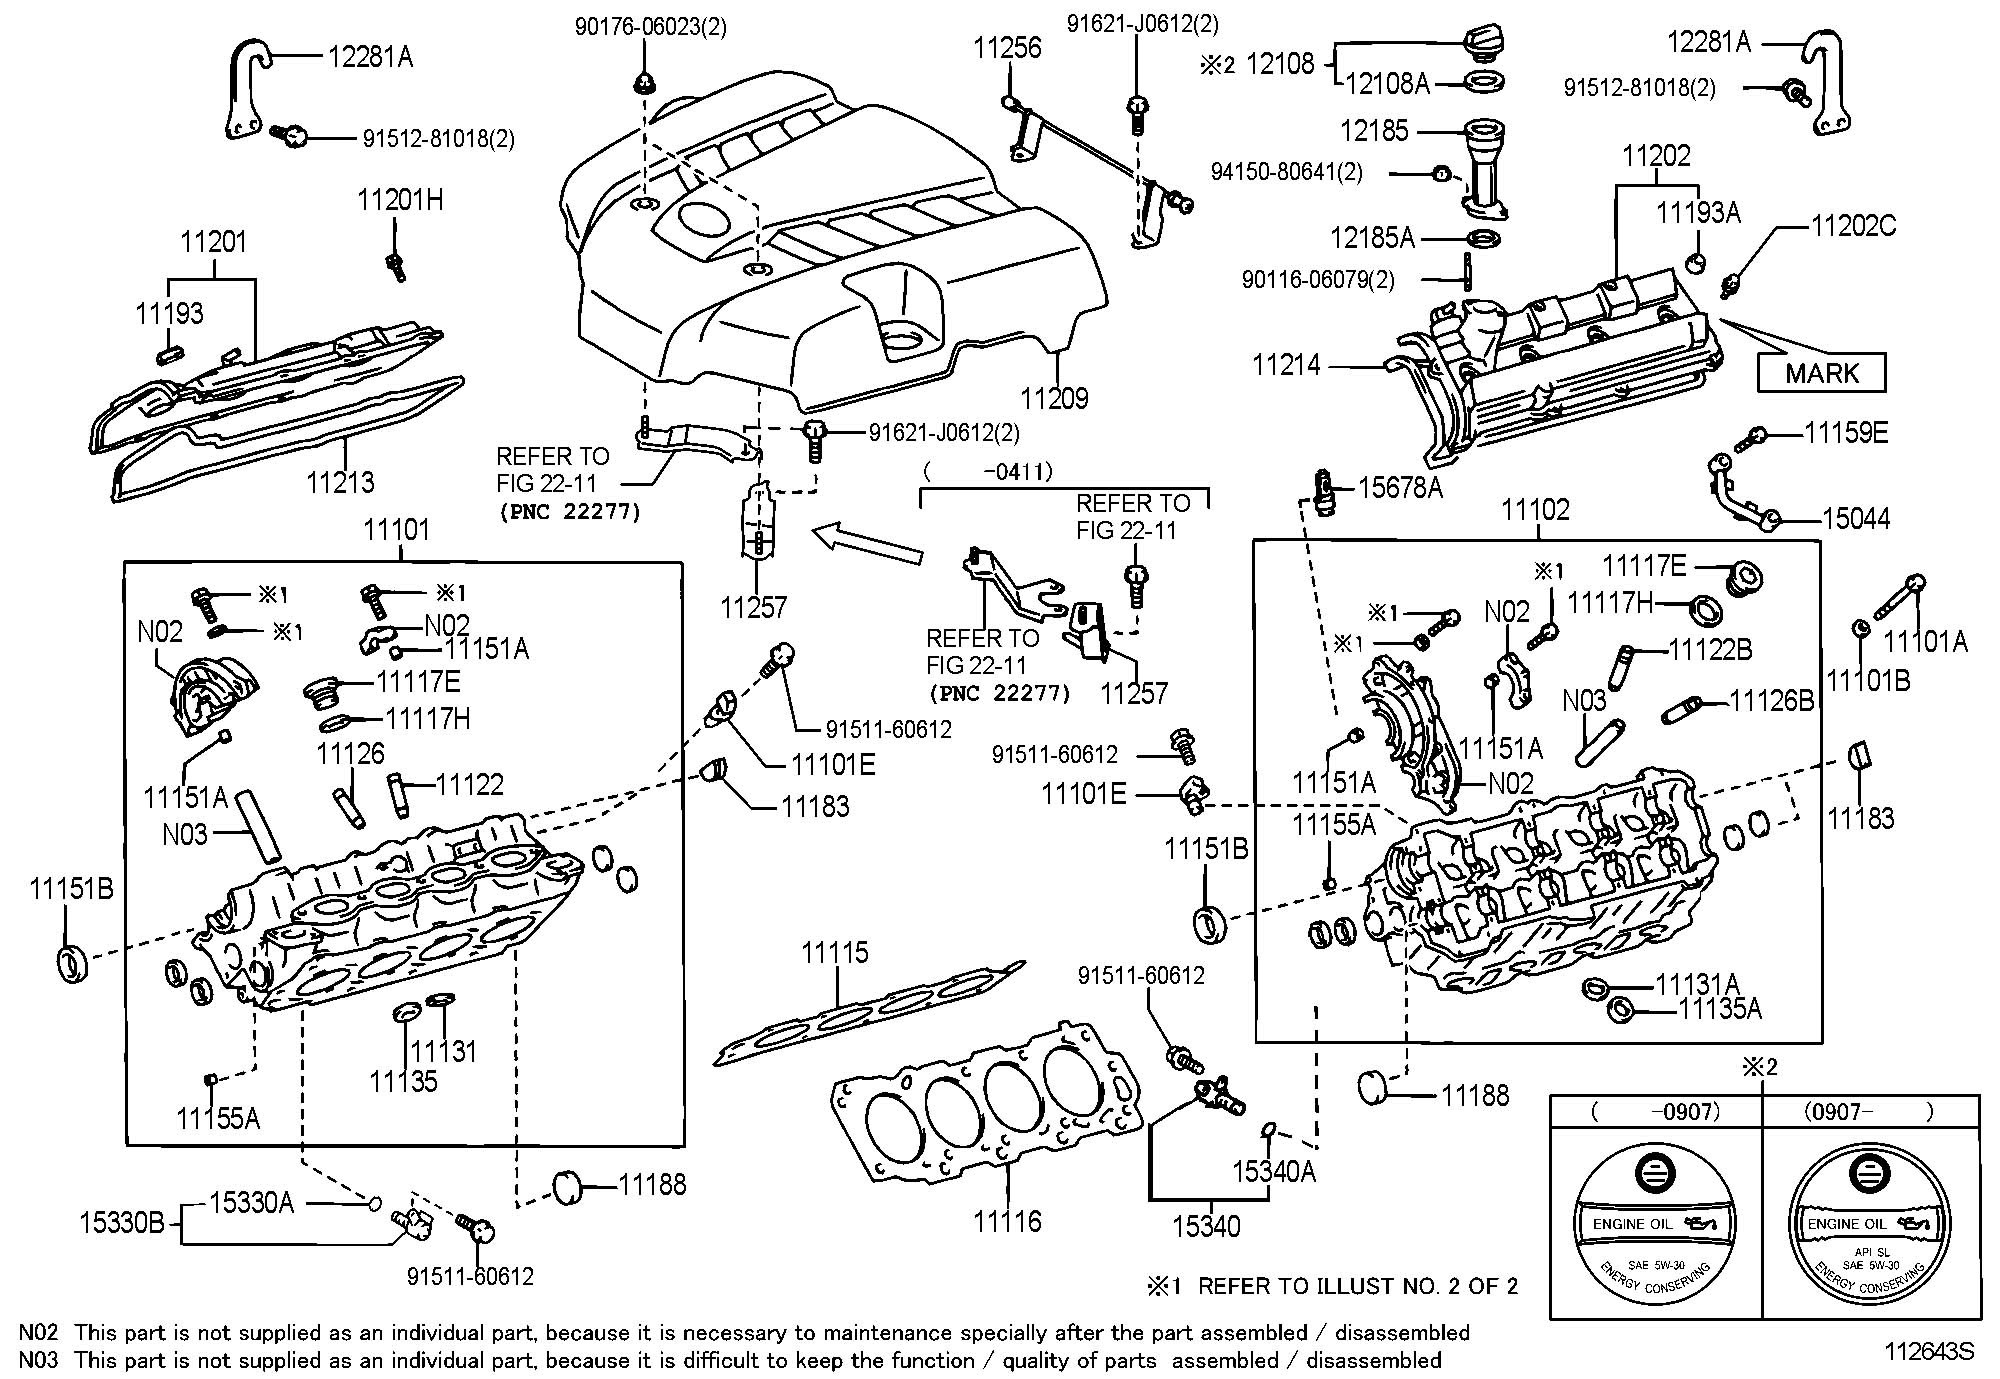 2002 Lexus Es300 Parts Diagram Undercarriage Diy Enthusiasts 2001 Es 300 Stereo Wiring 2000 Rx300 Engine Product Diagrams U2022 Rh Genesisventures Us